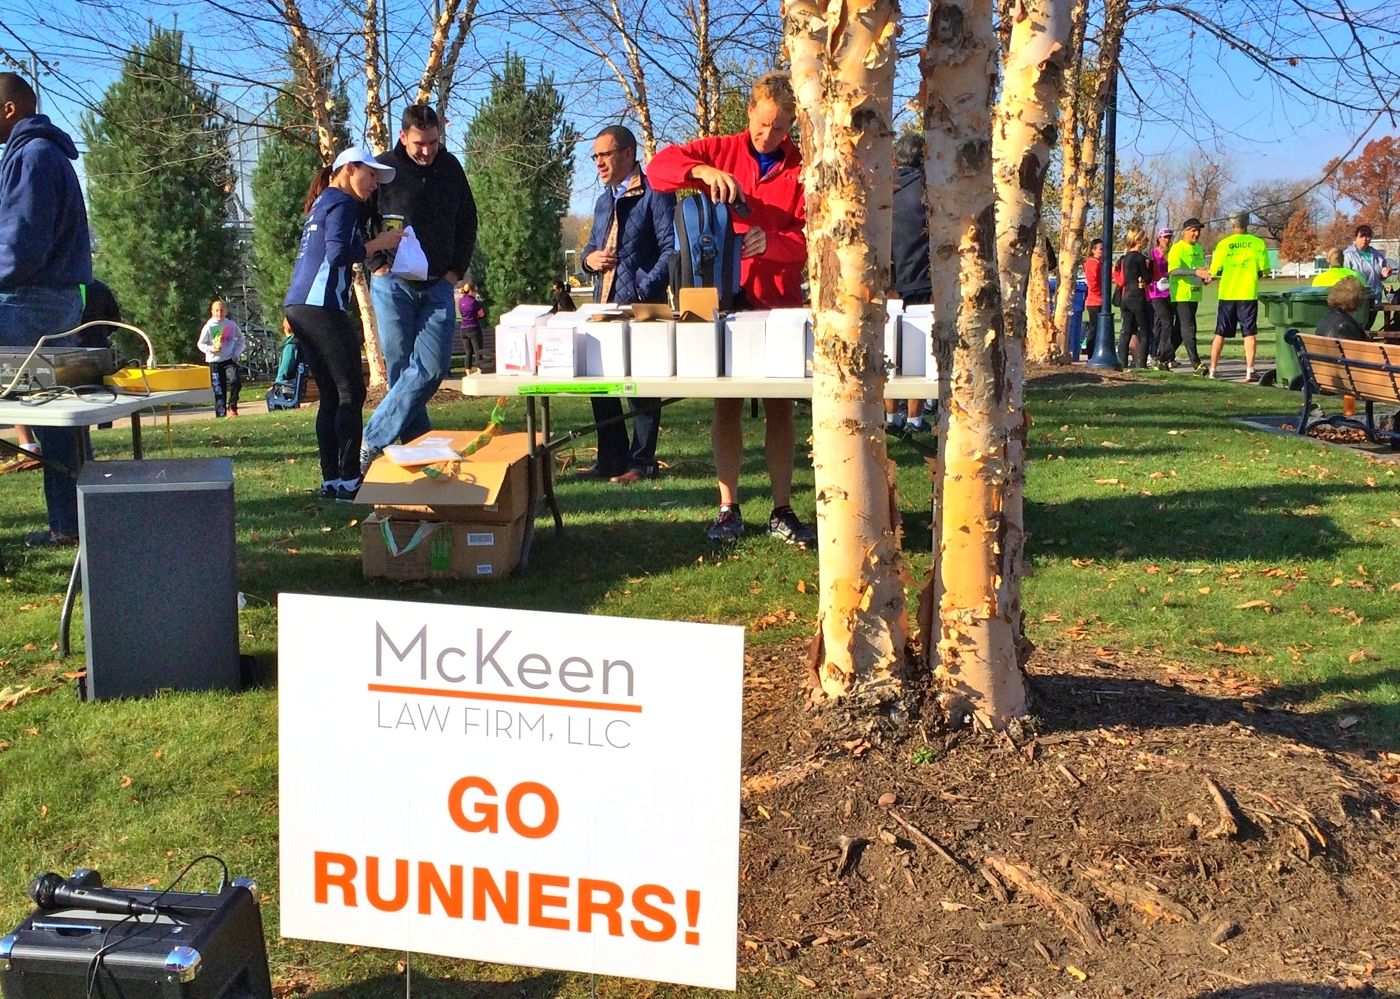 McKeen Law Firm To Sponsor The 2016 Race To Fill The Pantry